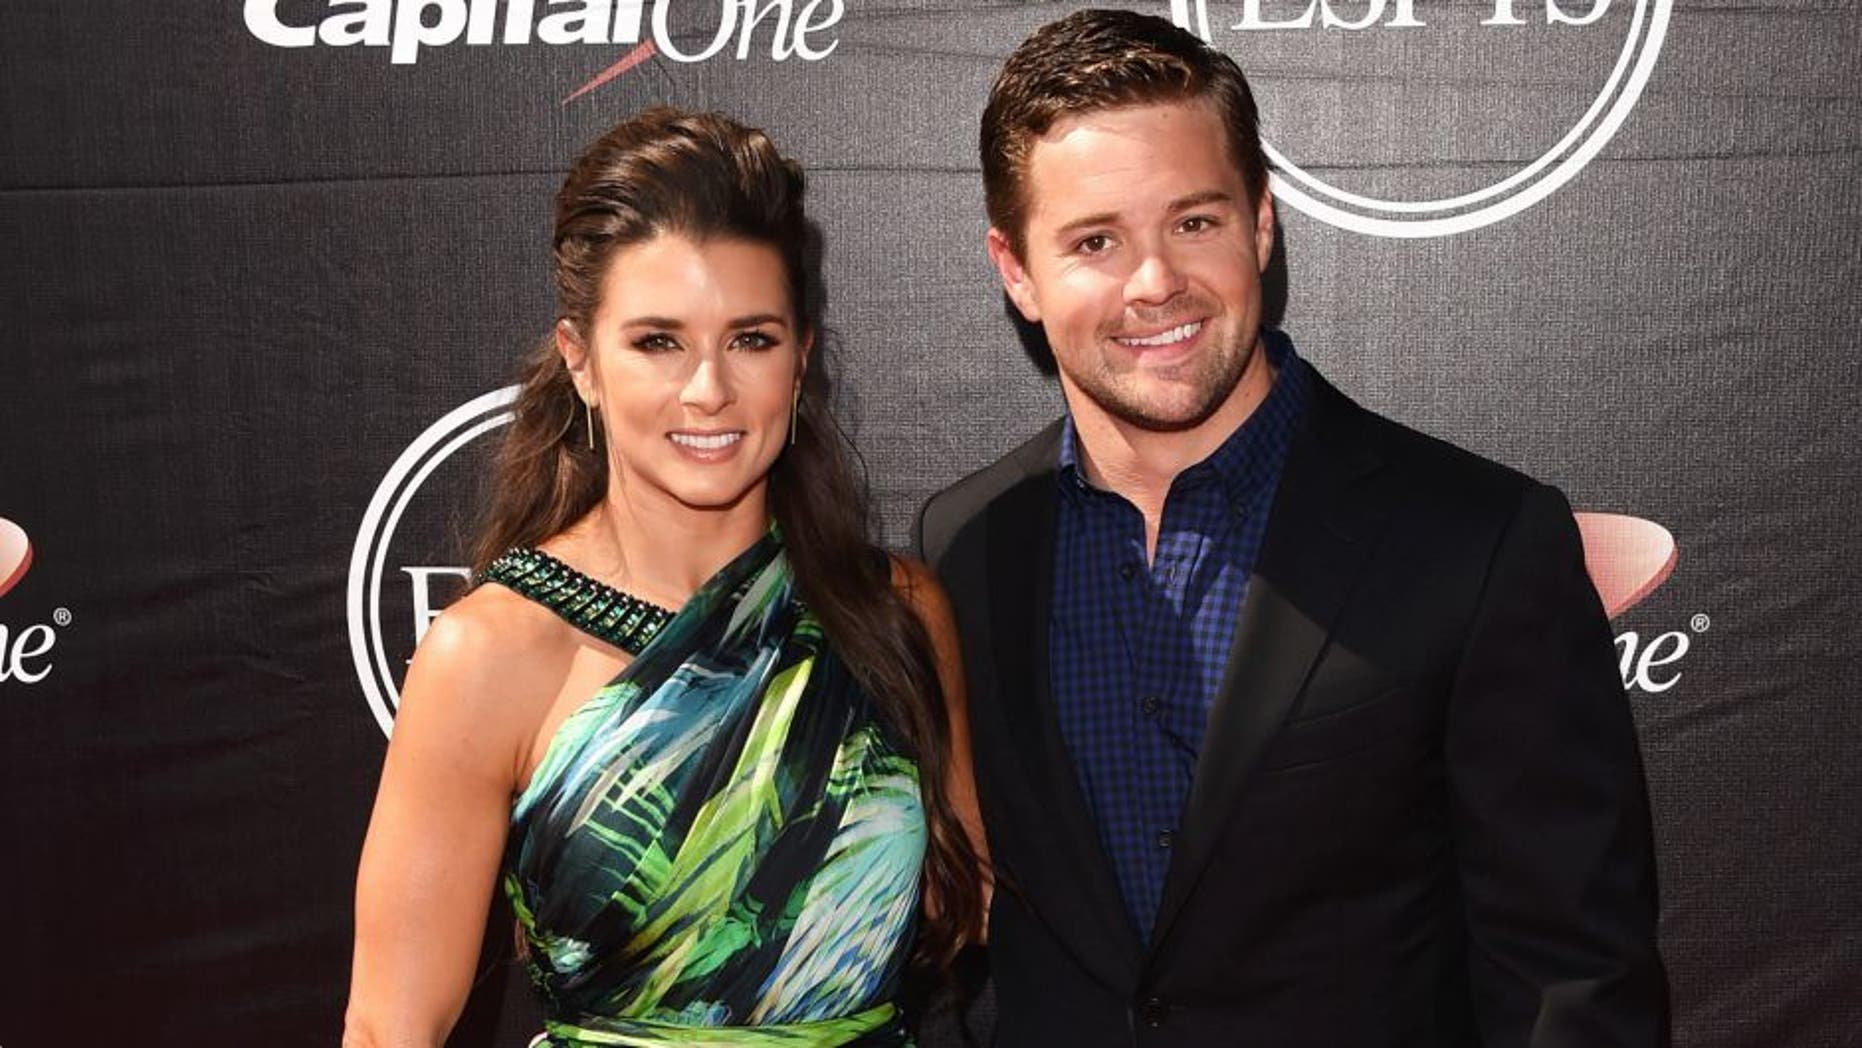 LOS ANGELES, CA - JULY 15: (L-R) Driver Danica Patrick with driver Ricky Stenhouse, Jr. attends The 2015 ESPYS at Microsoft Theater on July 15, 2015 in Los Angeles, California. (Photo by Jason Merritt/Getty Images)